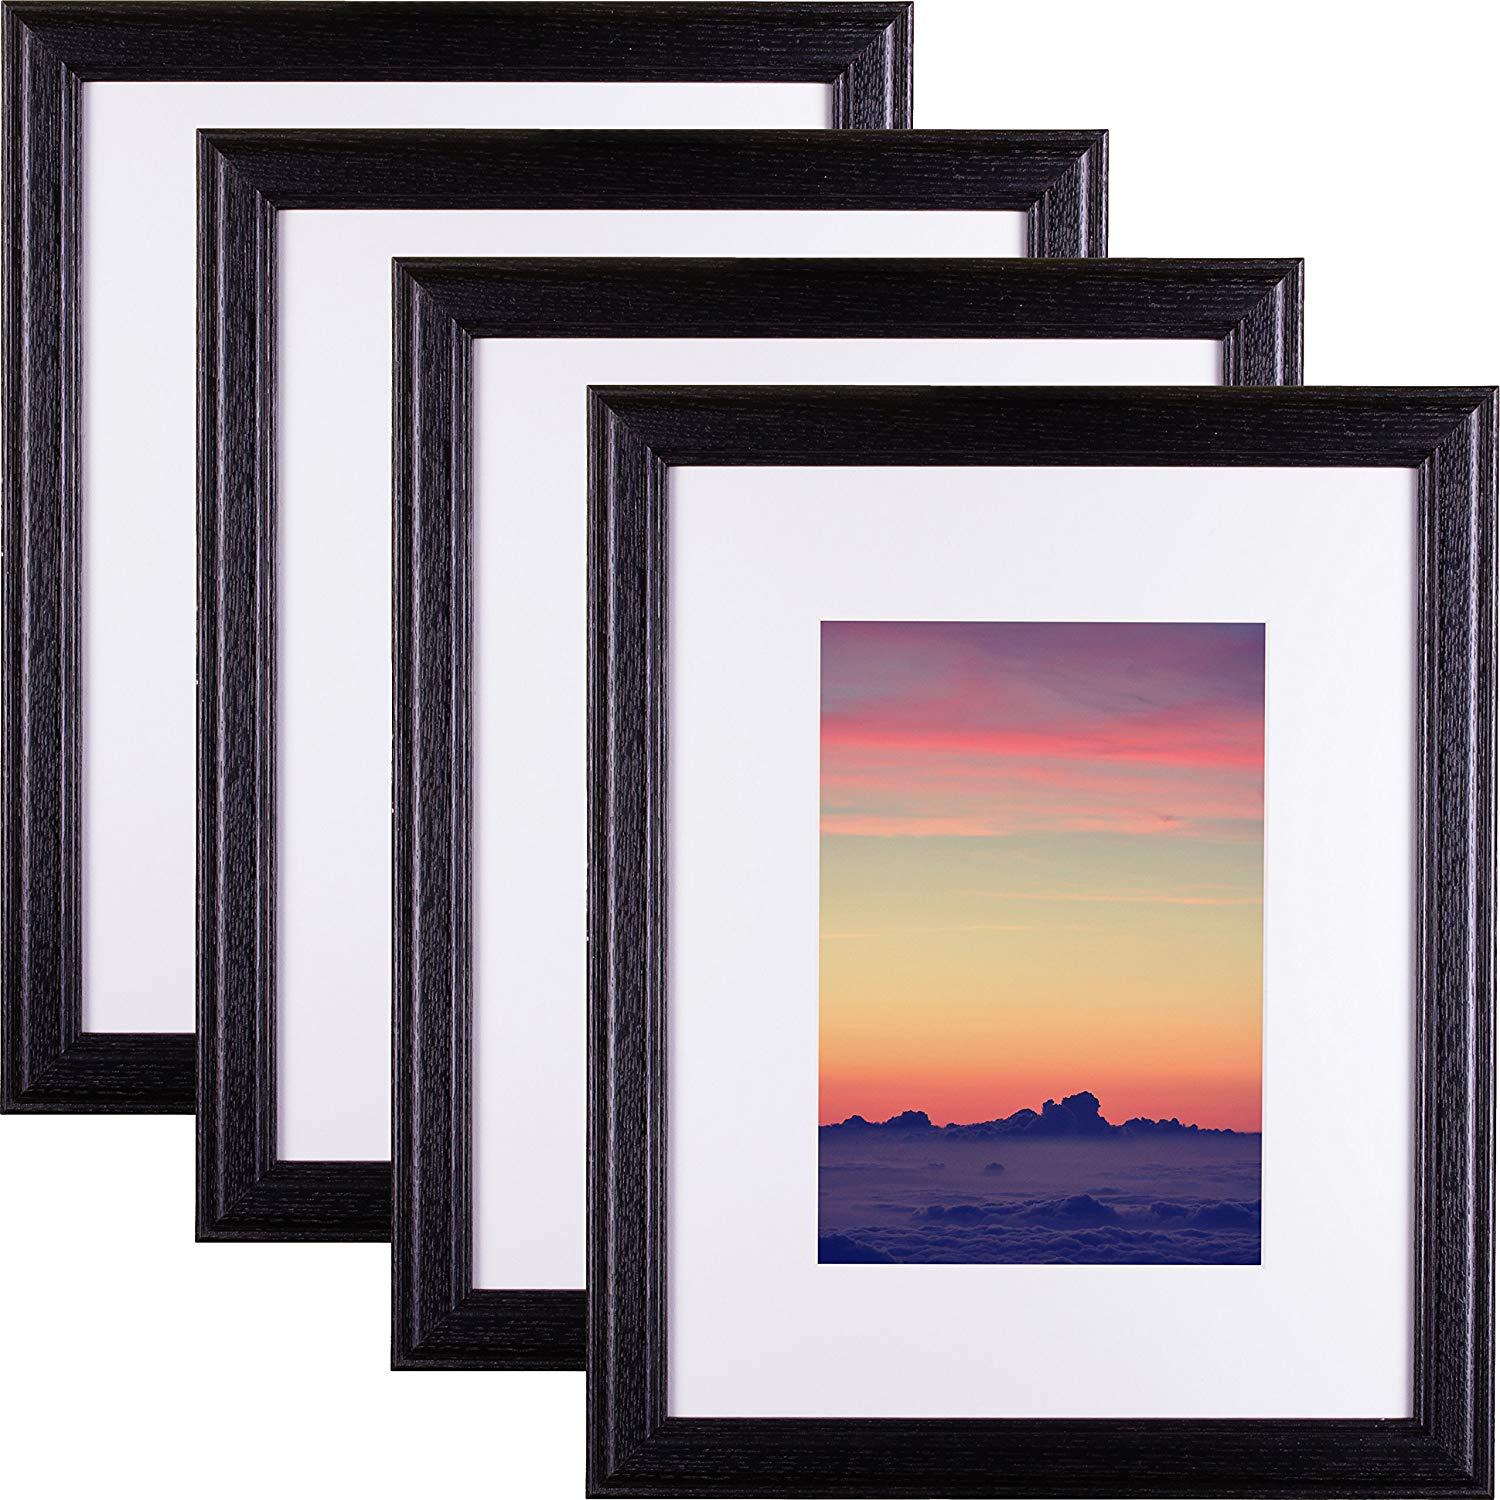 Cheap 17 X 22 Frame, find 17 X 22 Frame deals on line at Alibaba.com